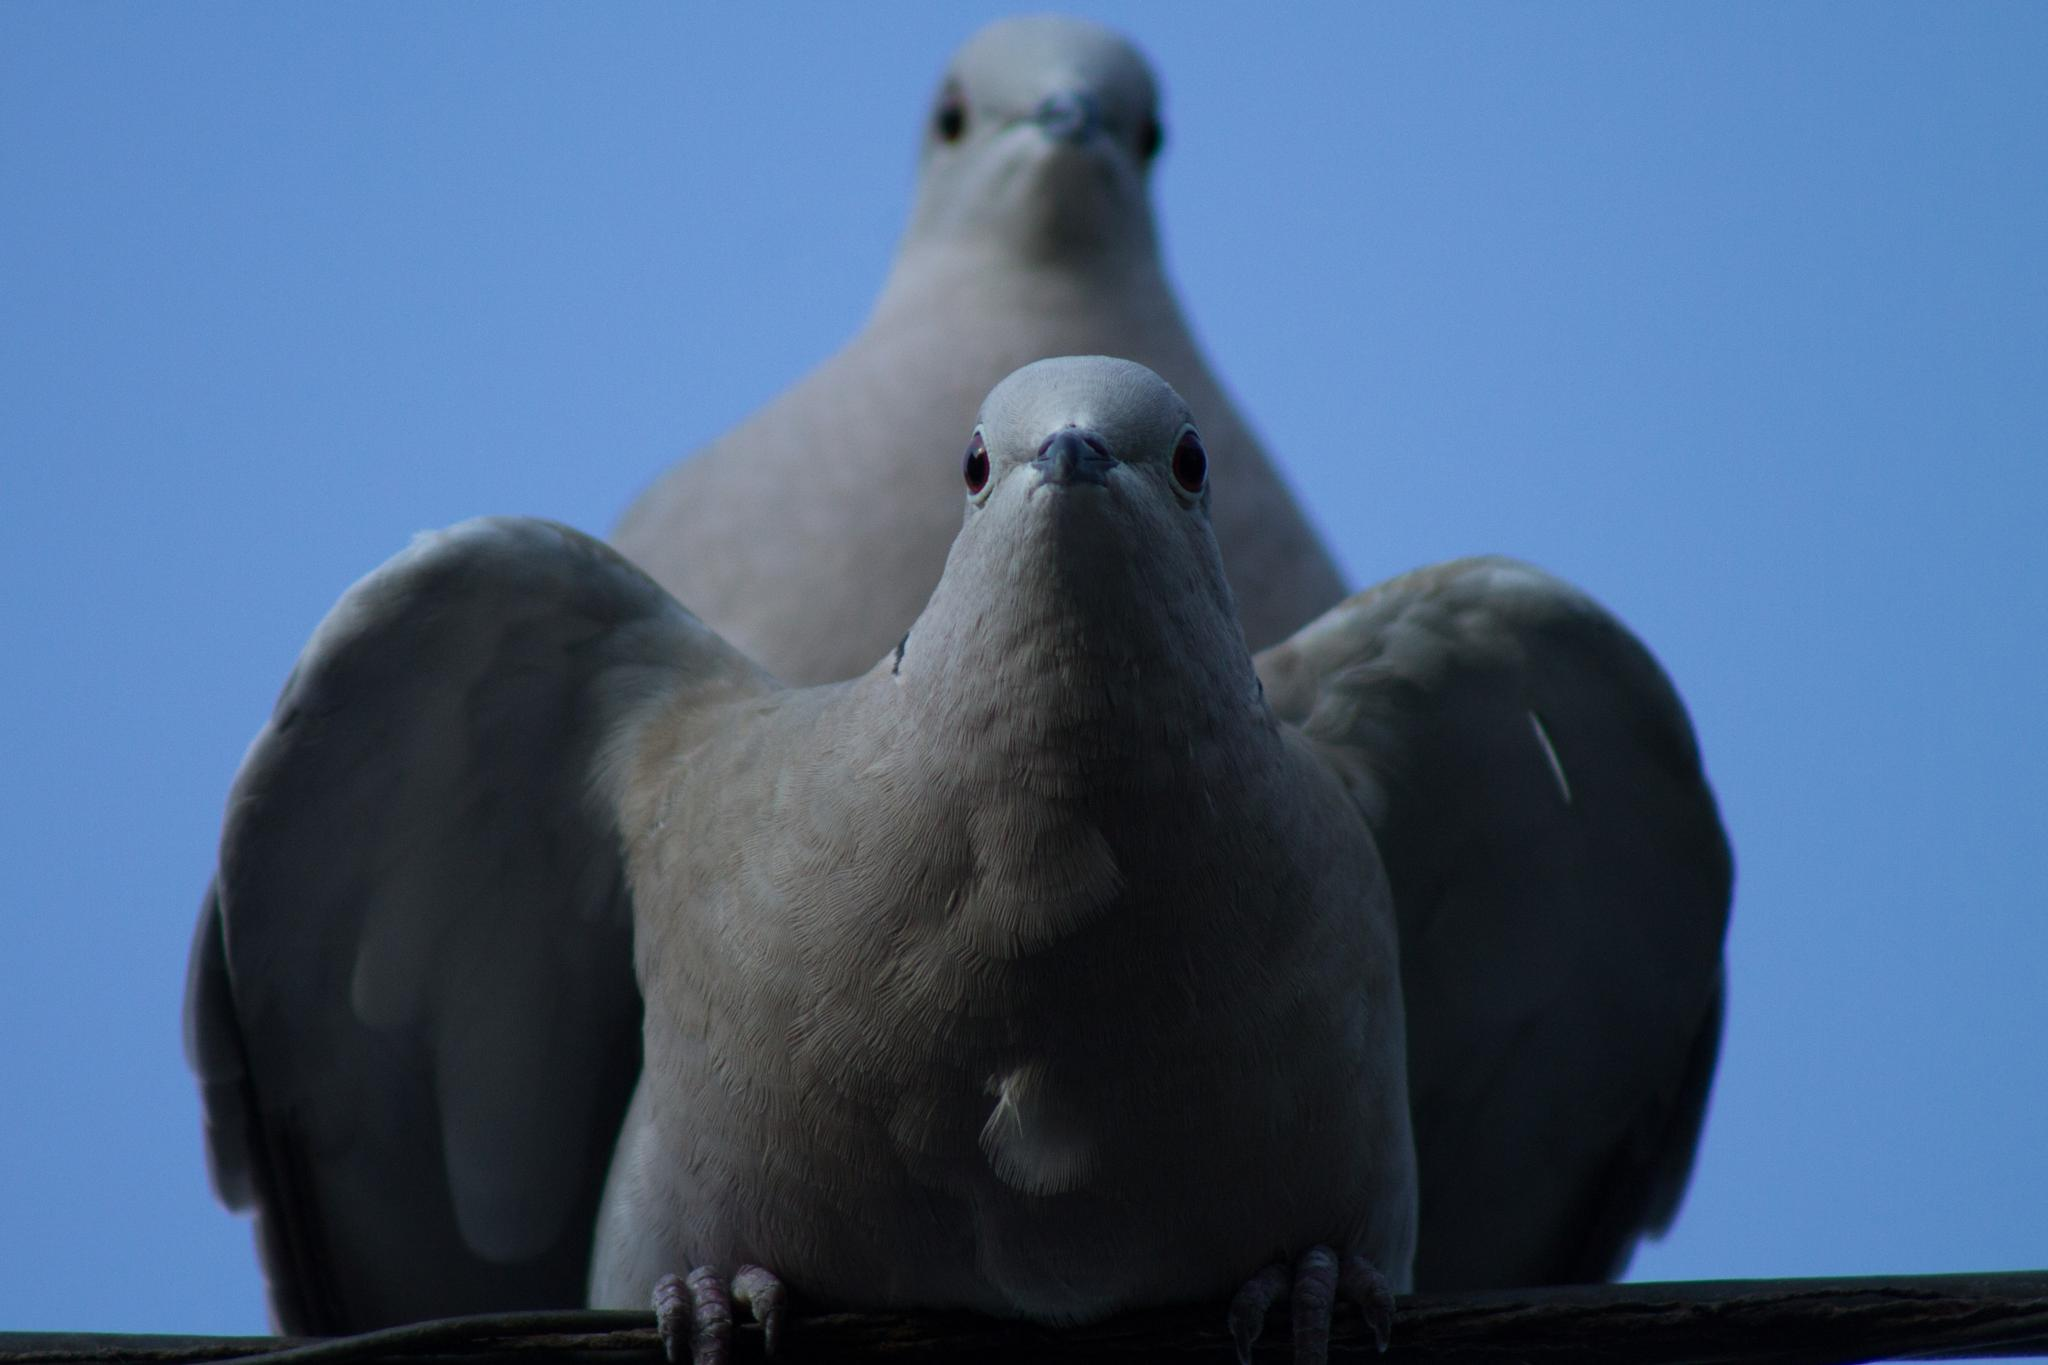 Mating Collared Dove's by Sam Hockaday